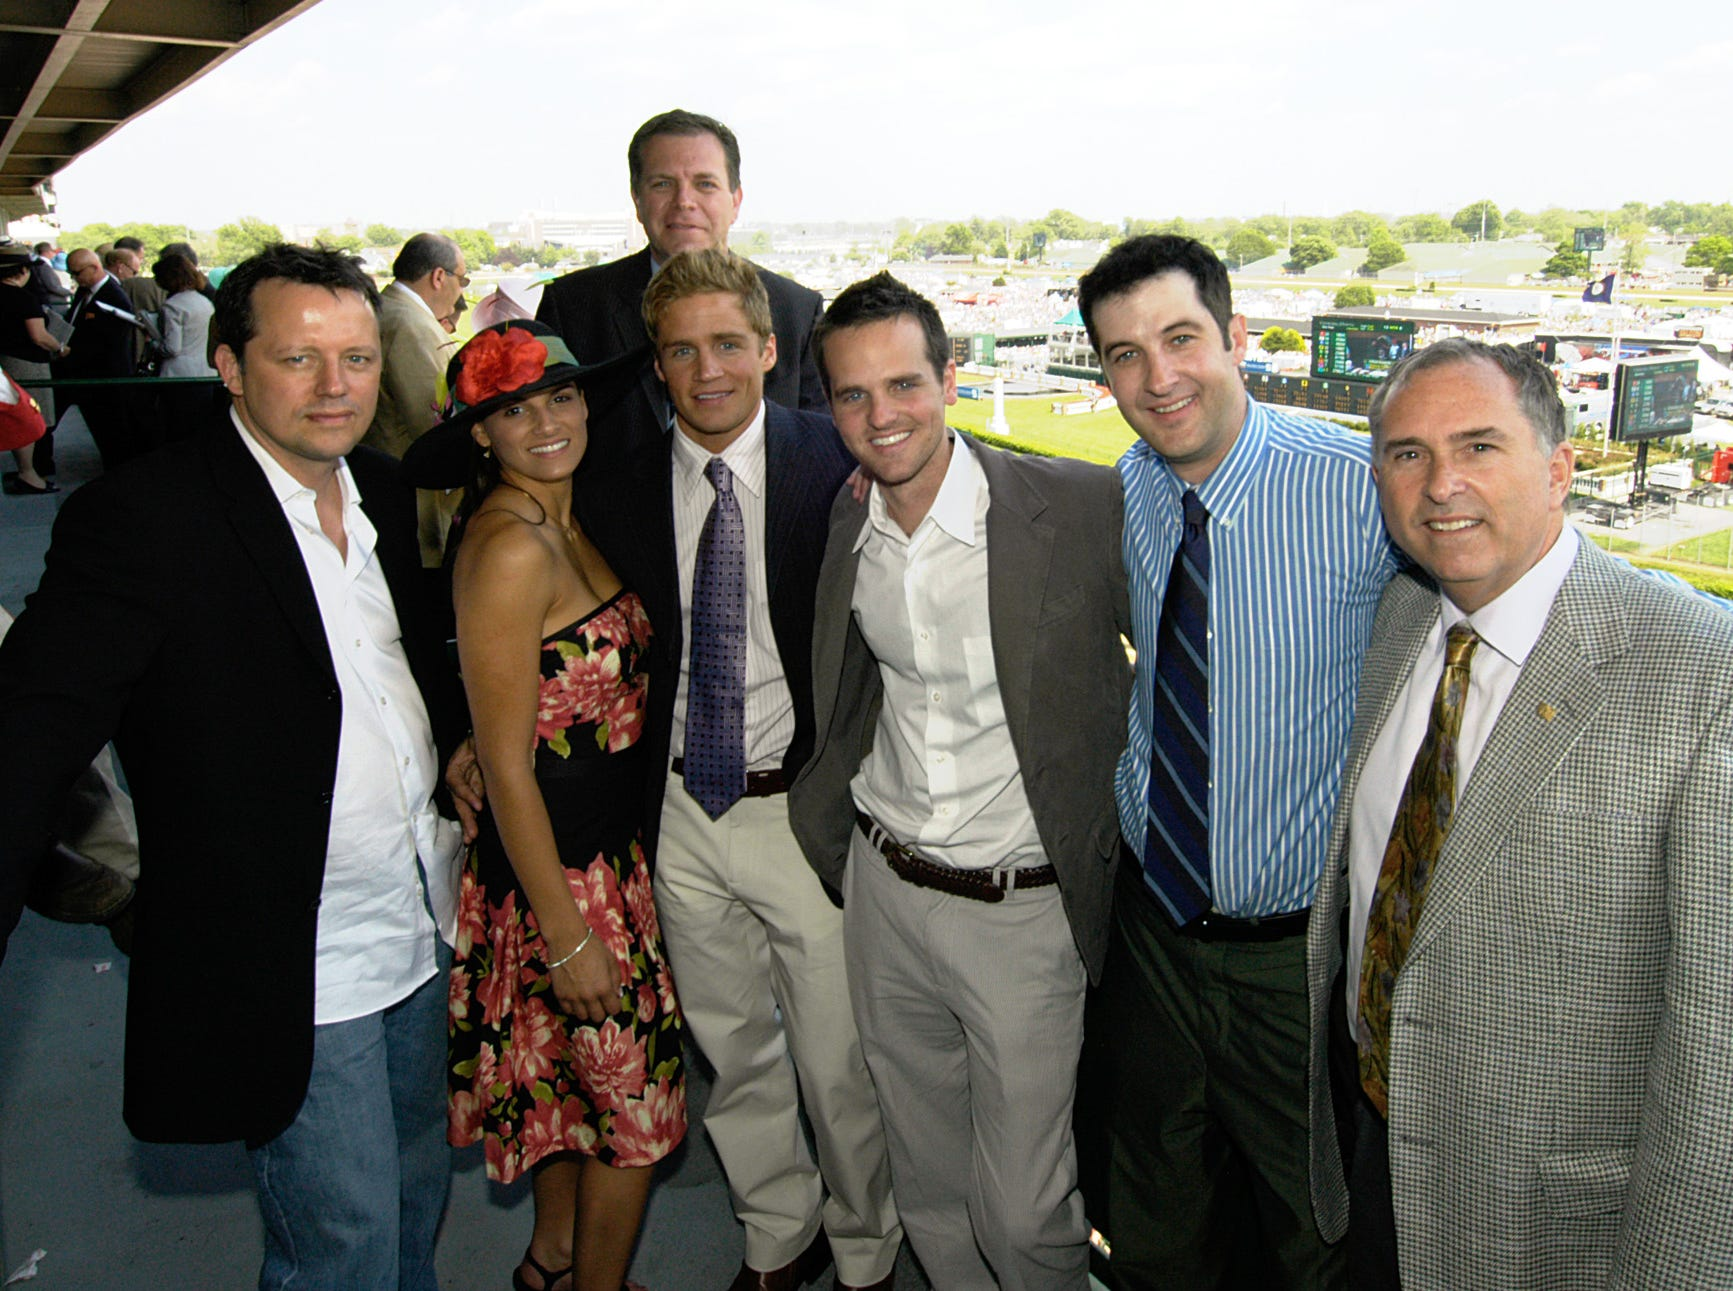 Mike Berry, center/top, president and CEO of Kentucky Derby Festival, at Churchill Downs with Derby Festival guests. May 6, 2006